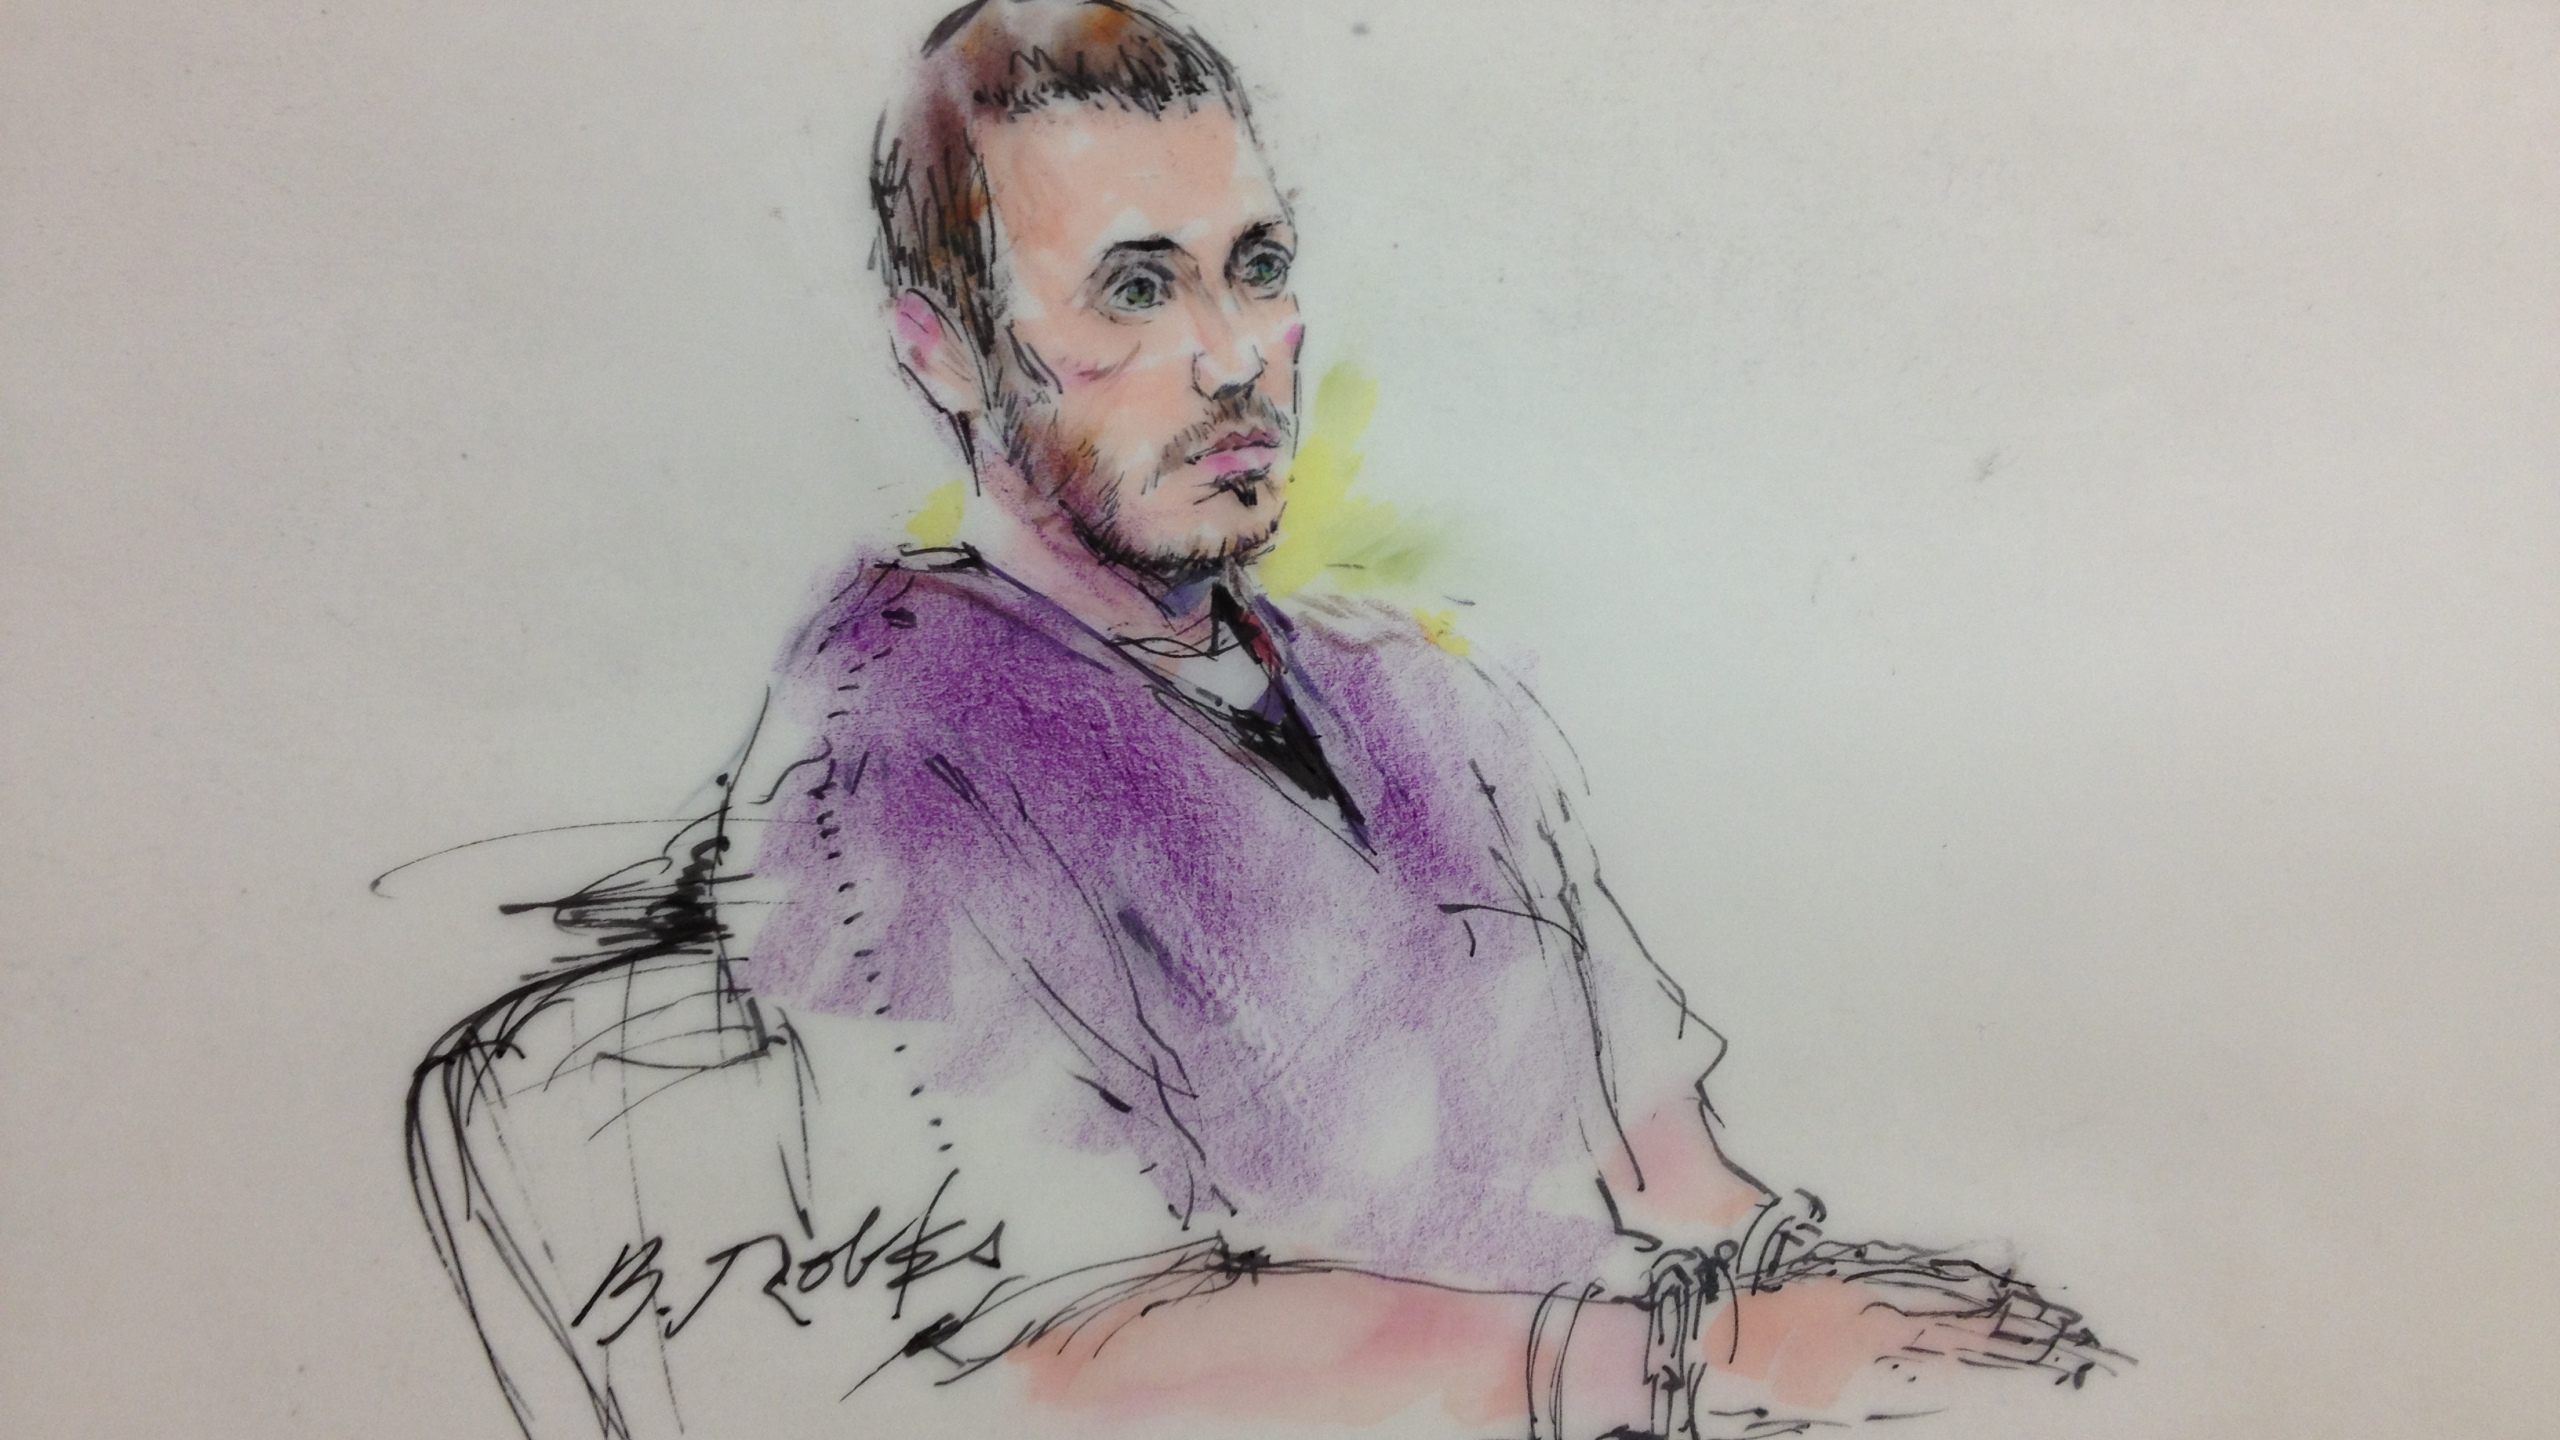 A sketch of James Holmes at a court proceeding on Sept. 20, 2012. (Sketch: Chris Mosher)